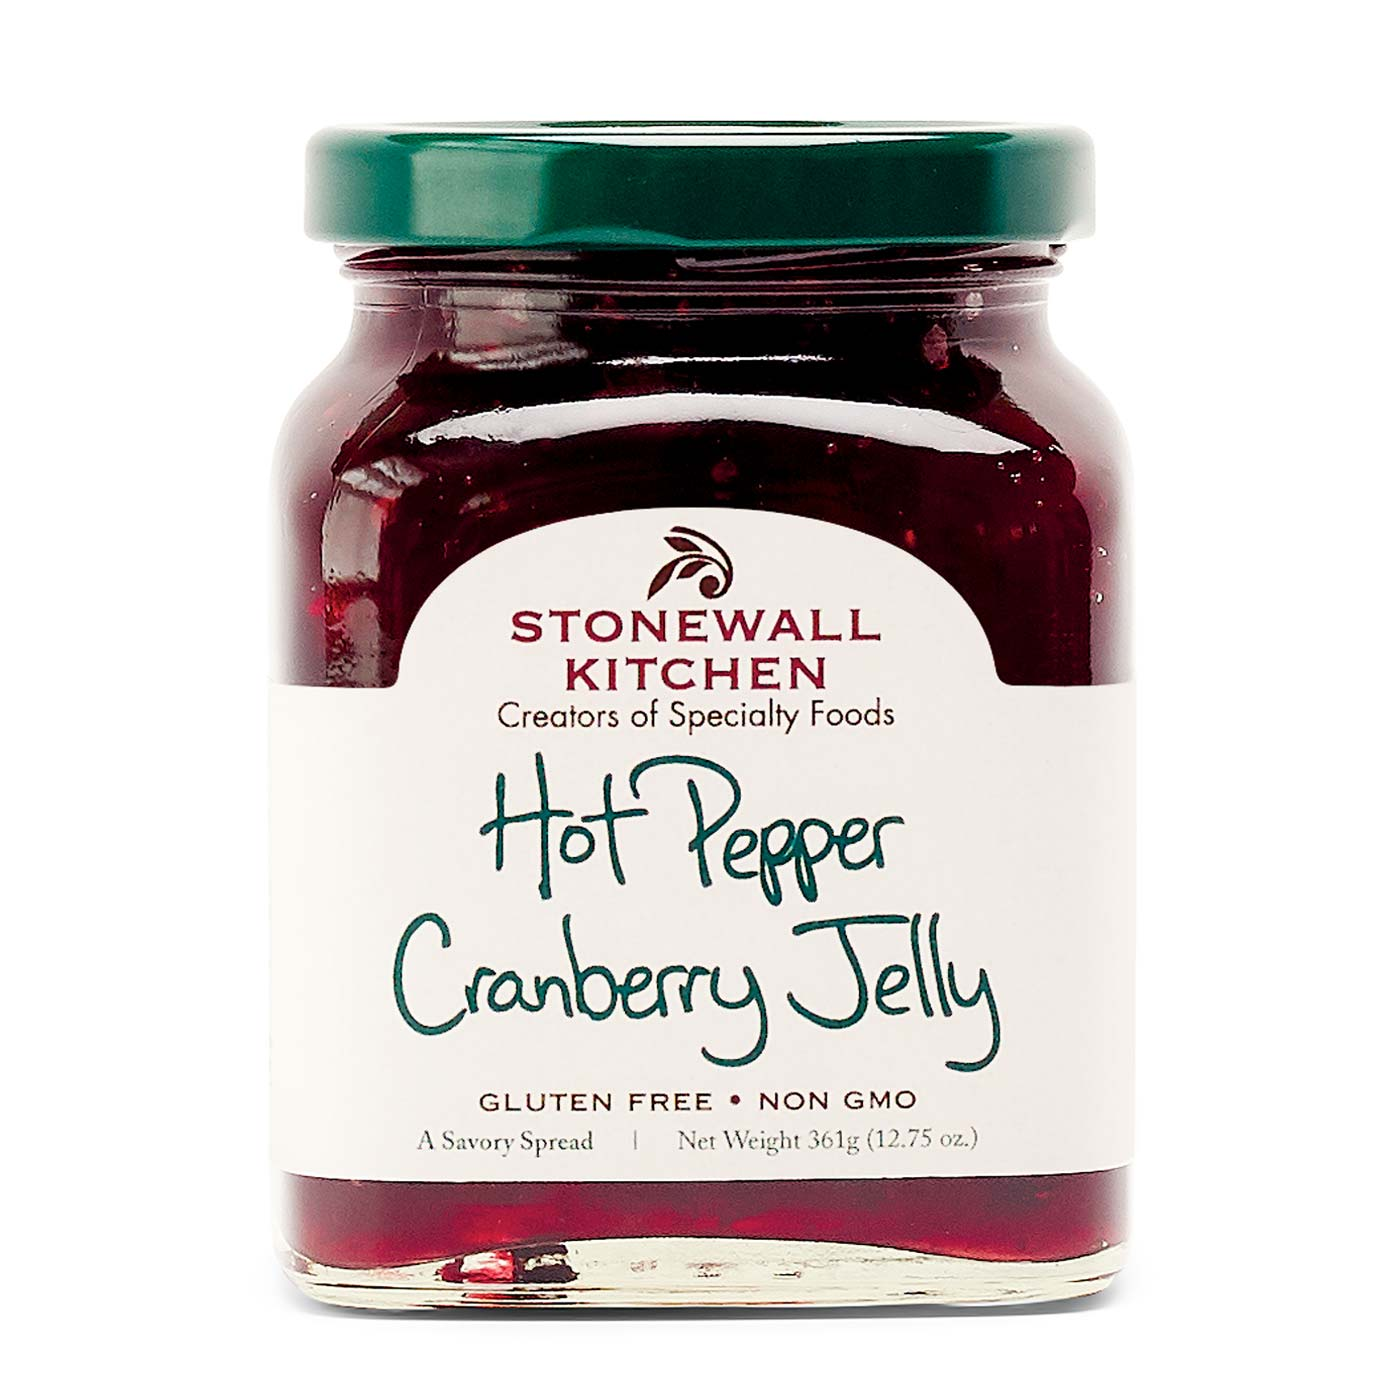 Hot Pepper Cranberry Jelly by Stonewall Kitchen